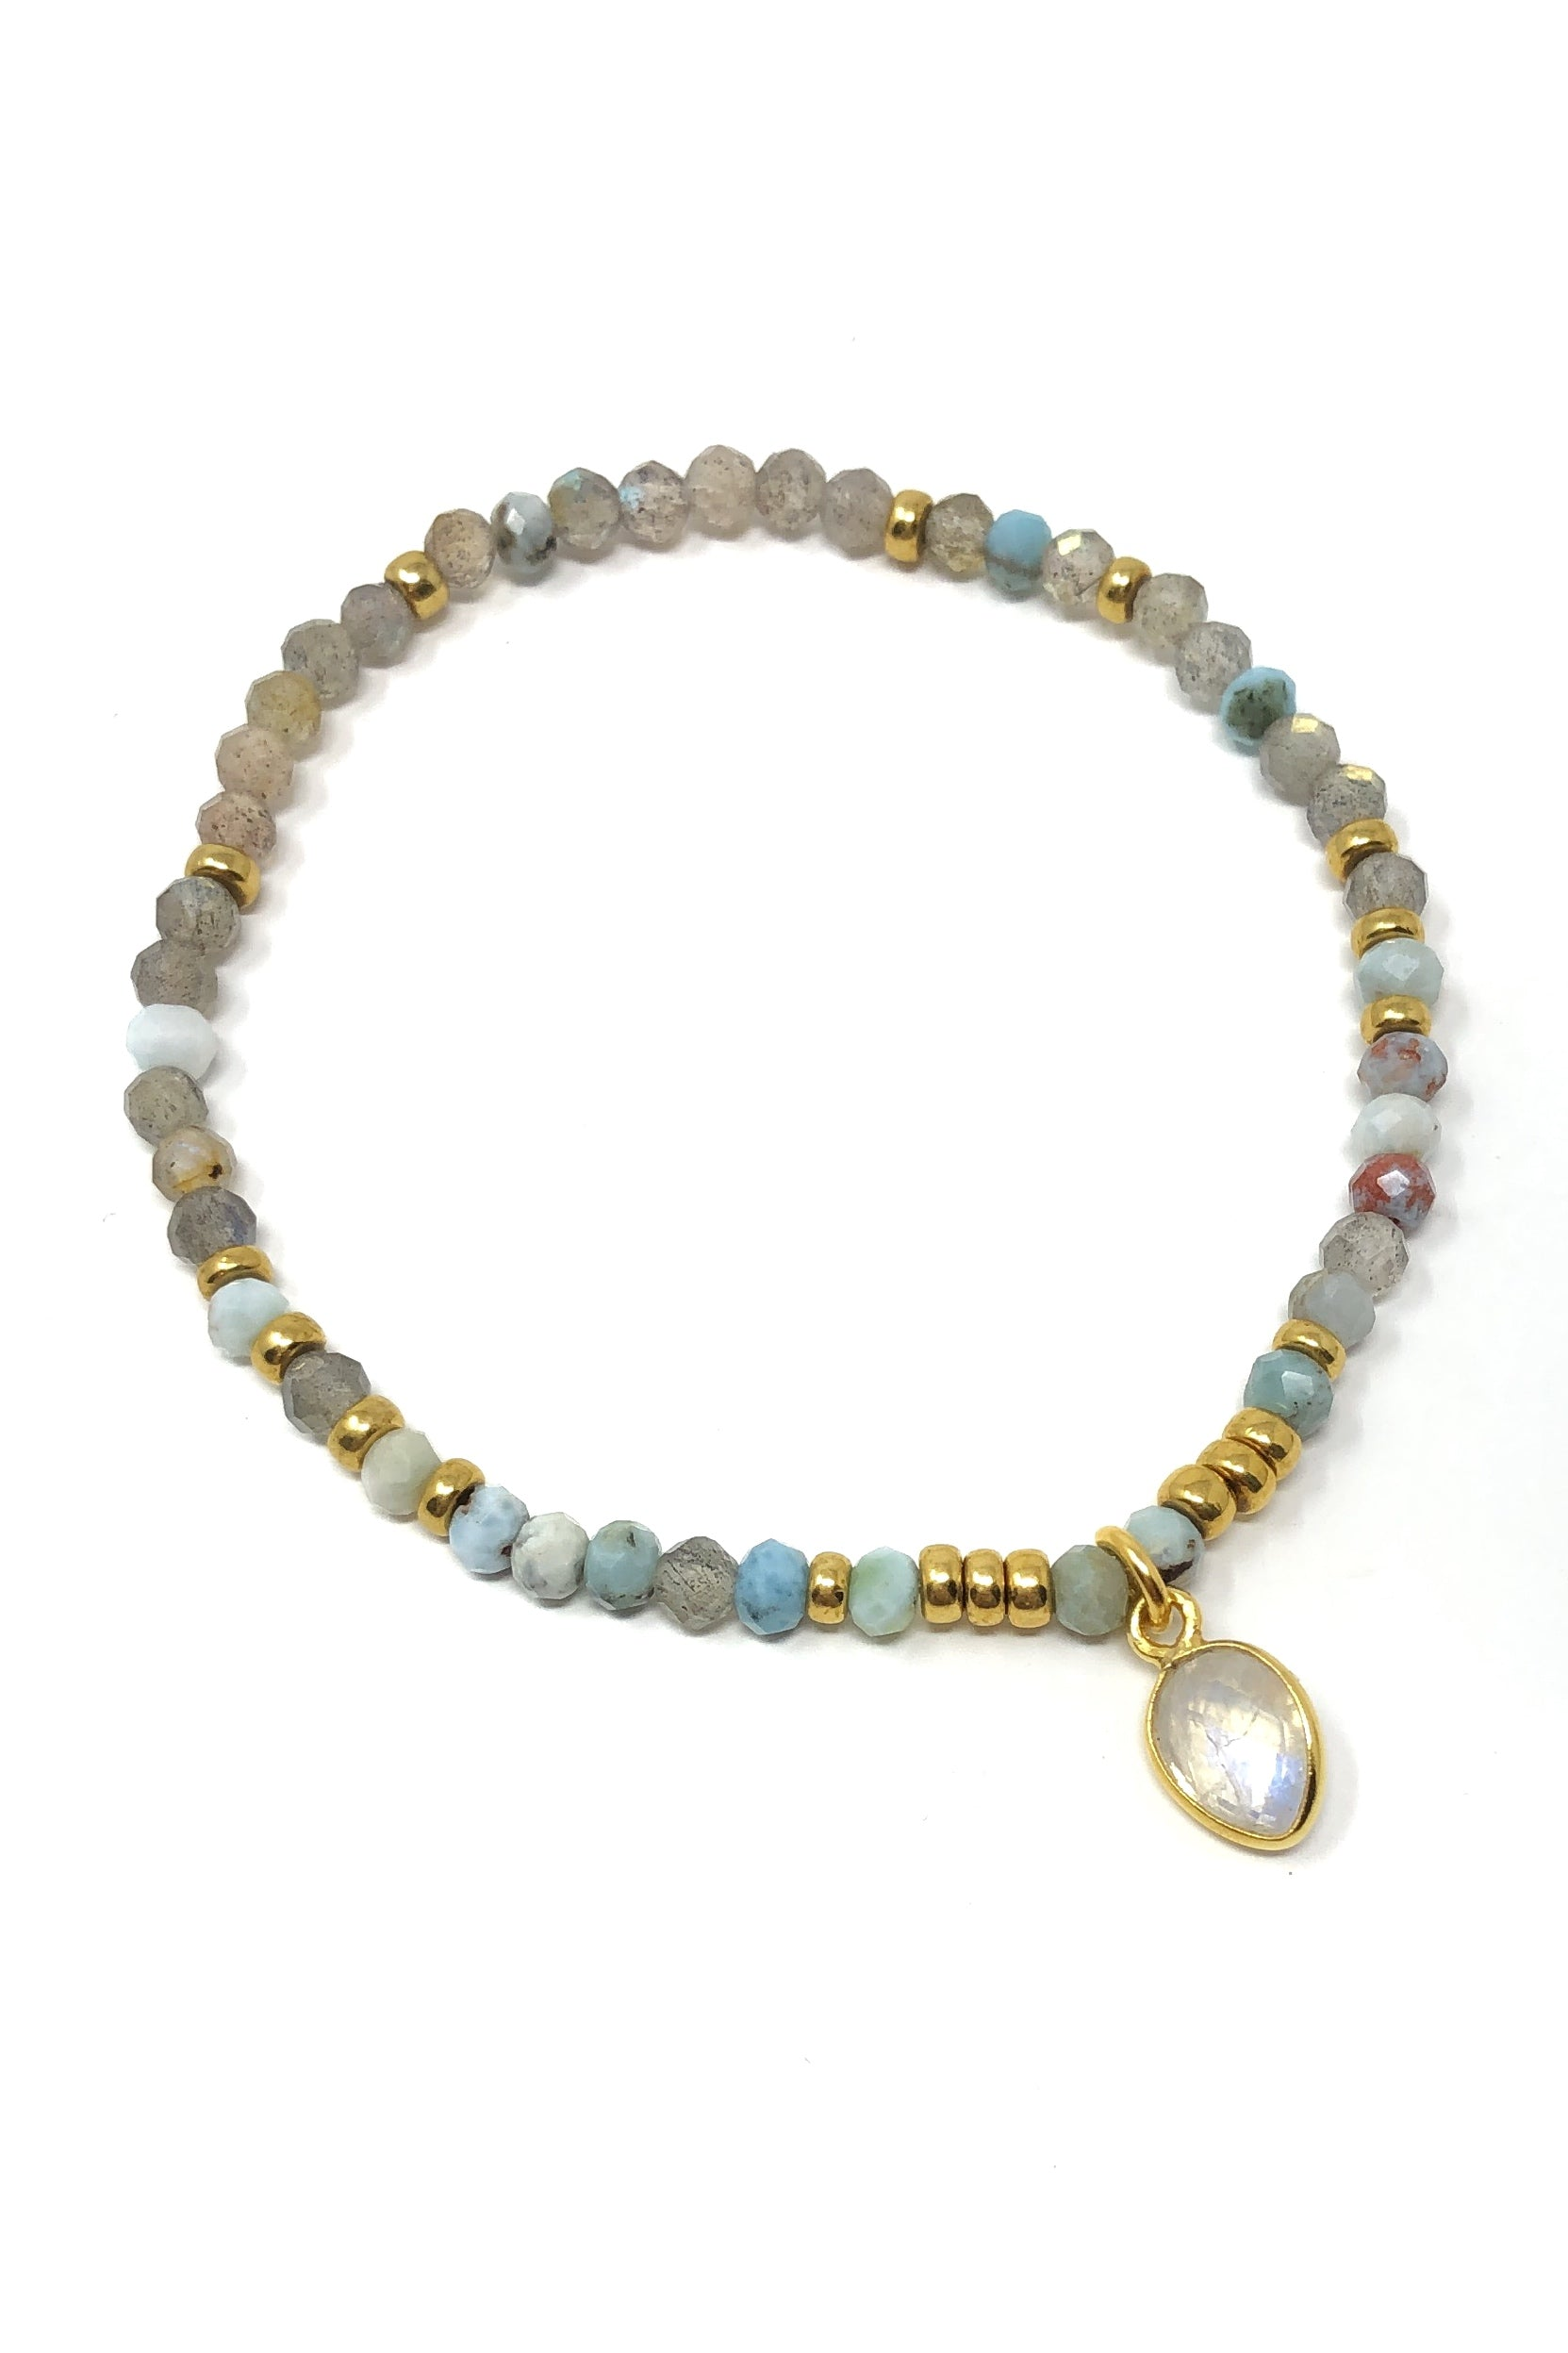 Larimar and Labradorite with Moonstone Charm Bracelet